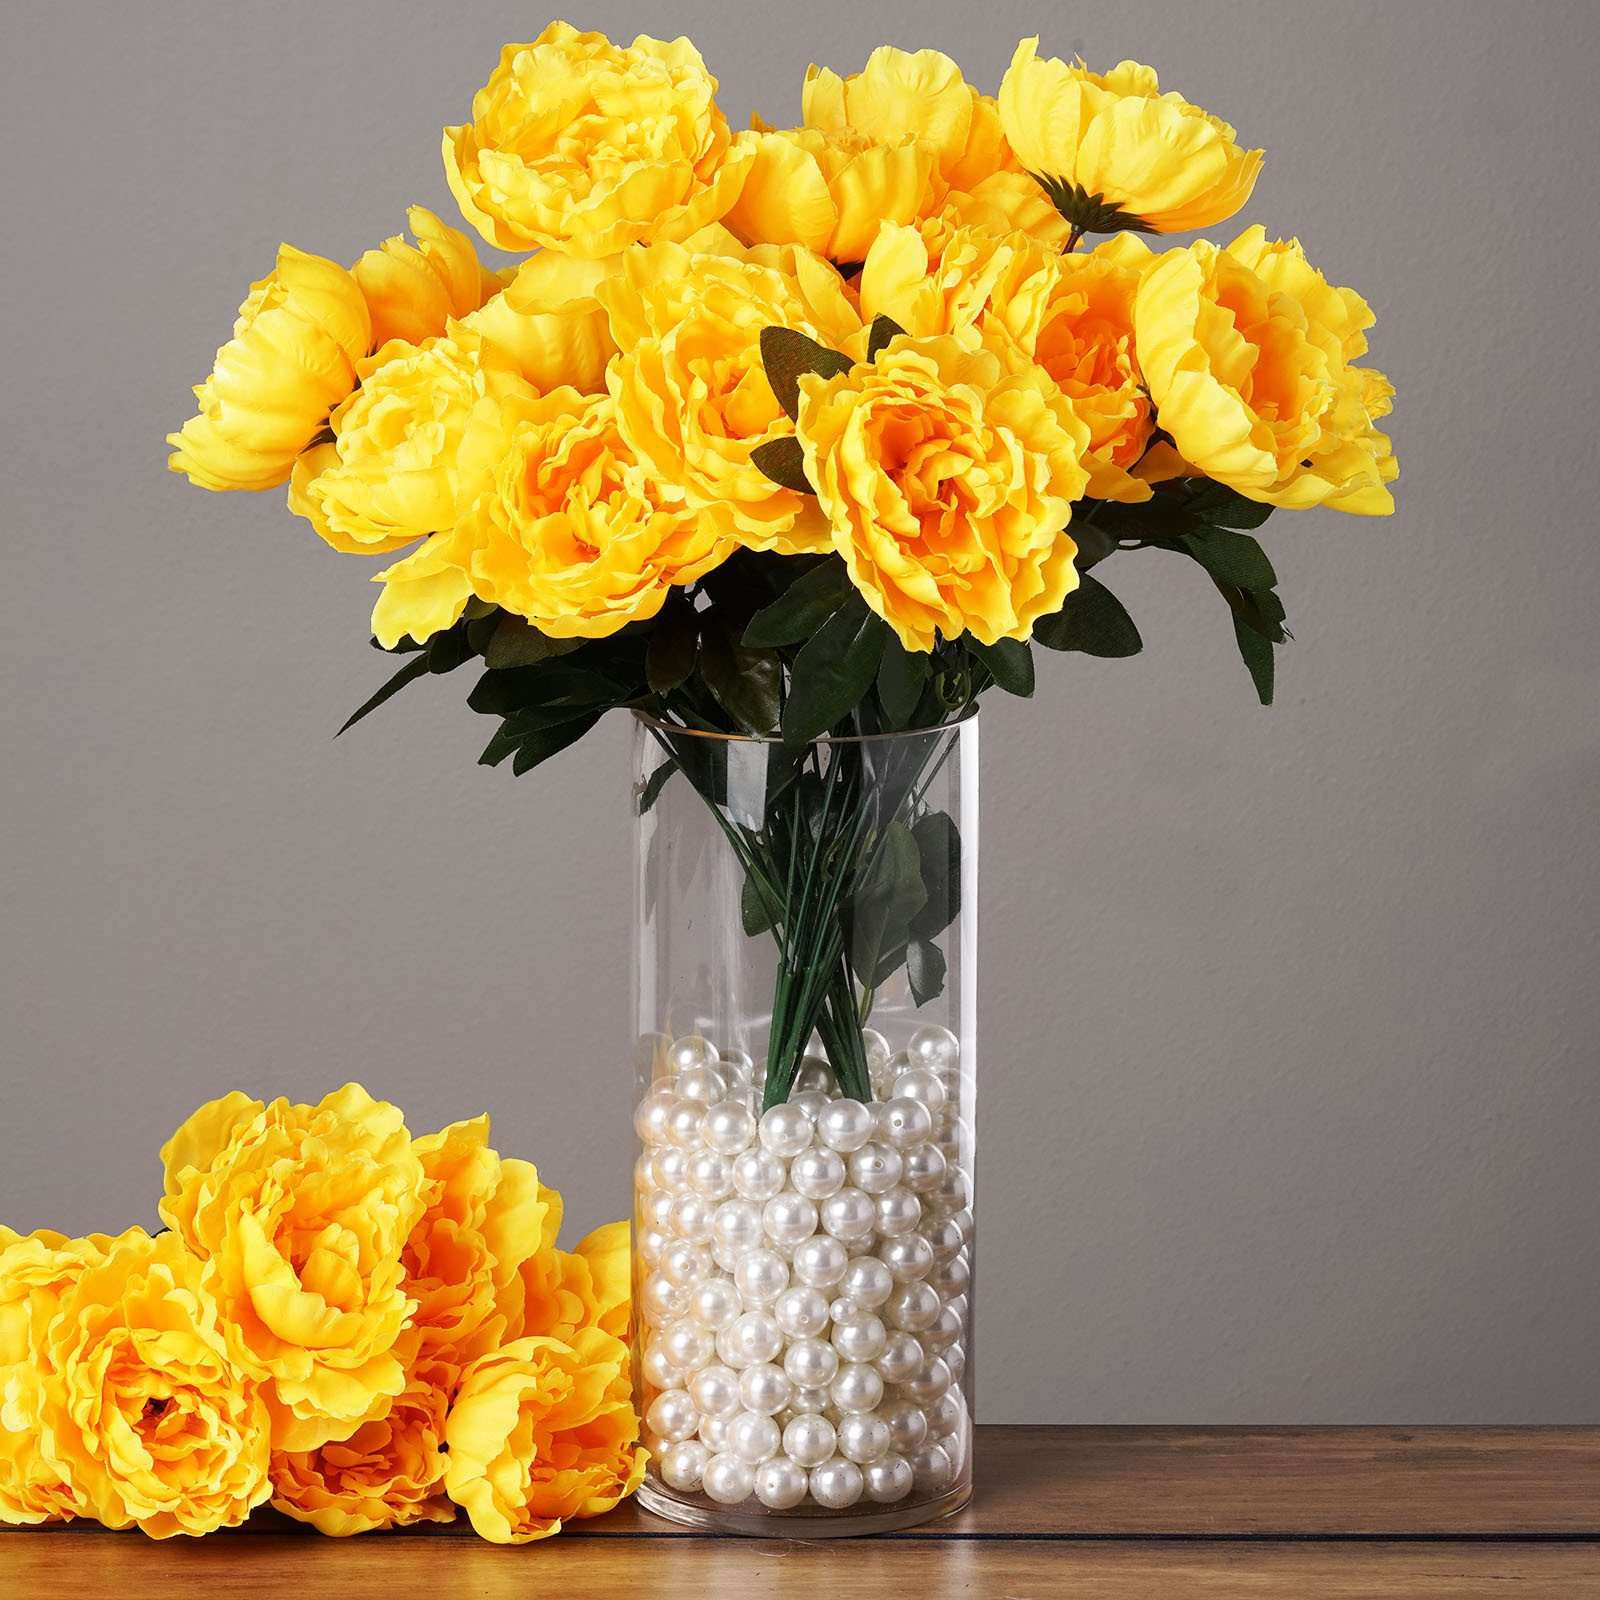 4 Pack 40 Pcs Yellow Artificial Silk Peony Flowers Bridal Bouquet